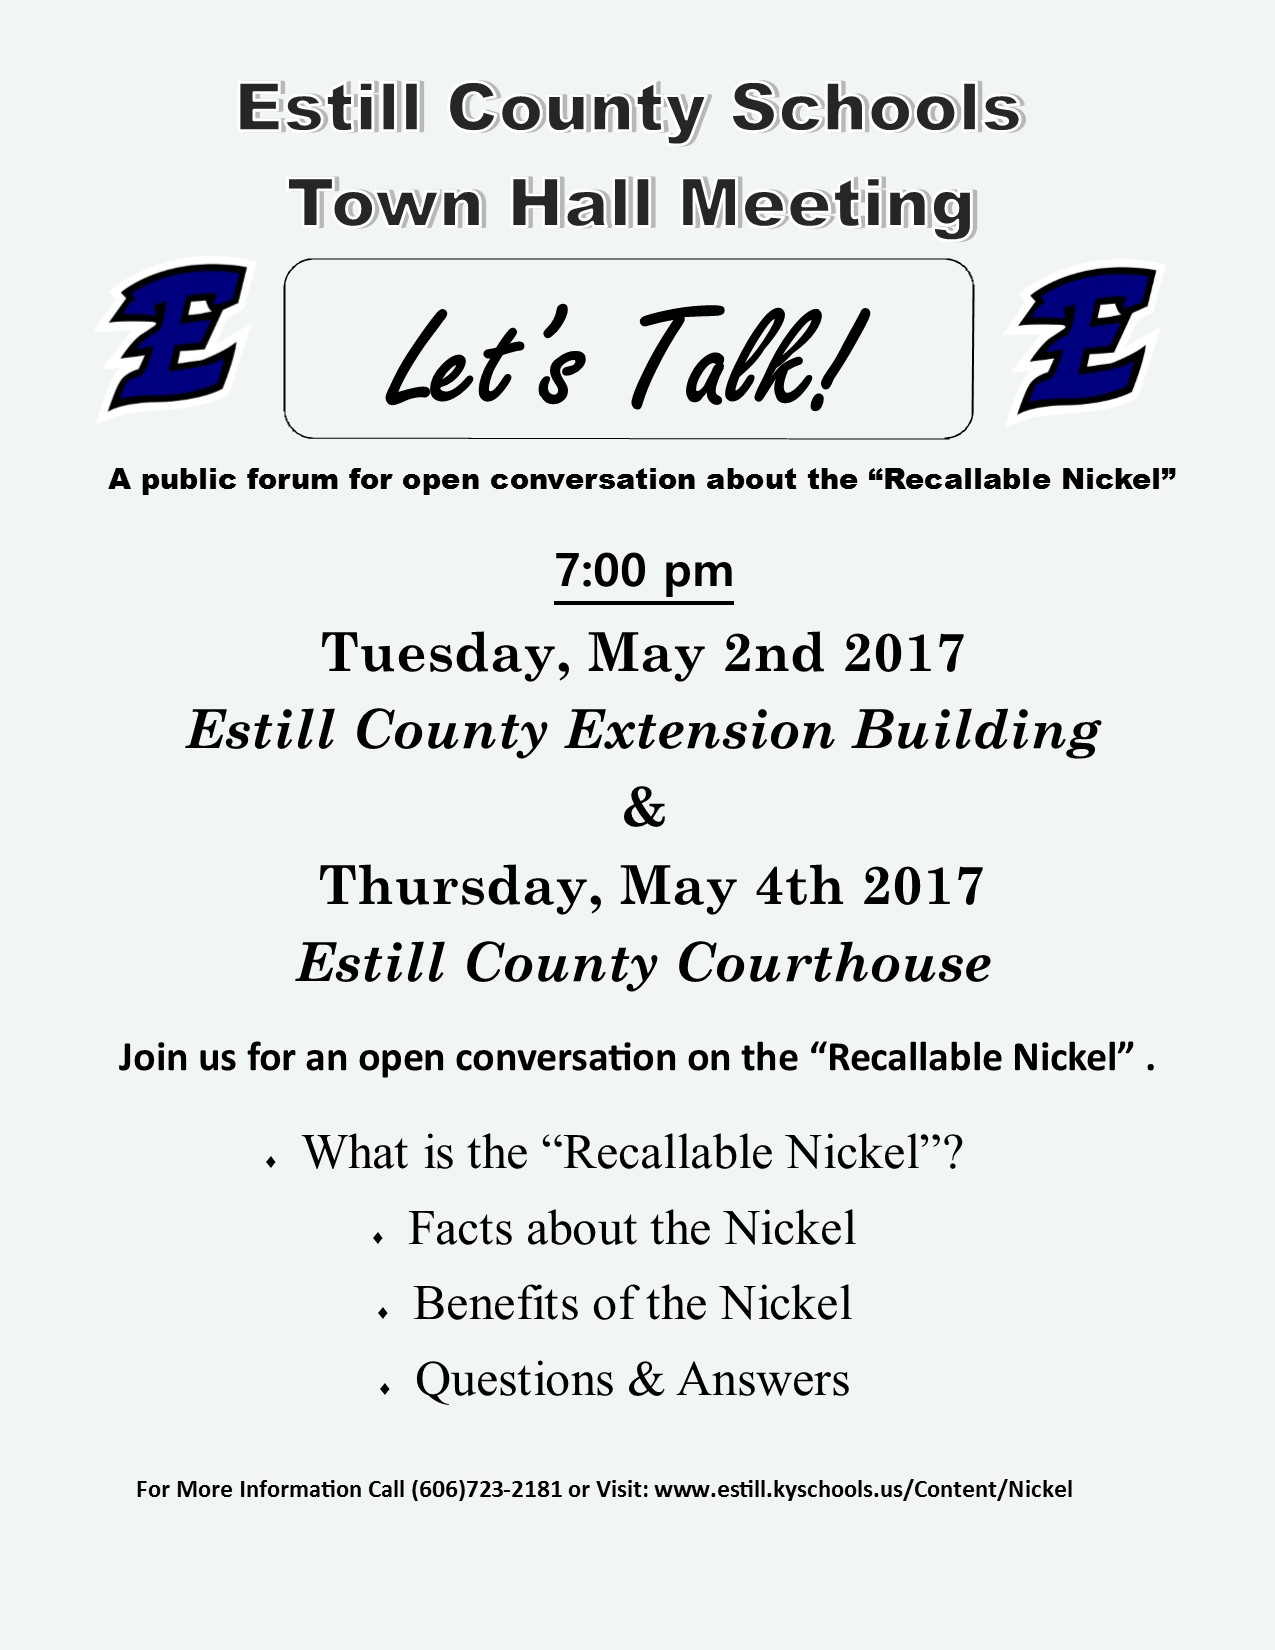 Flyer for townhall